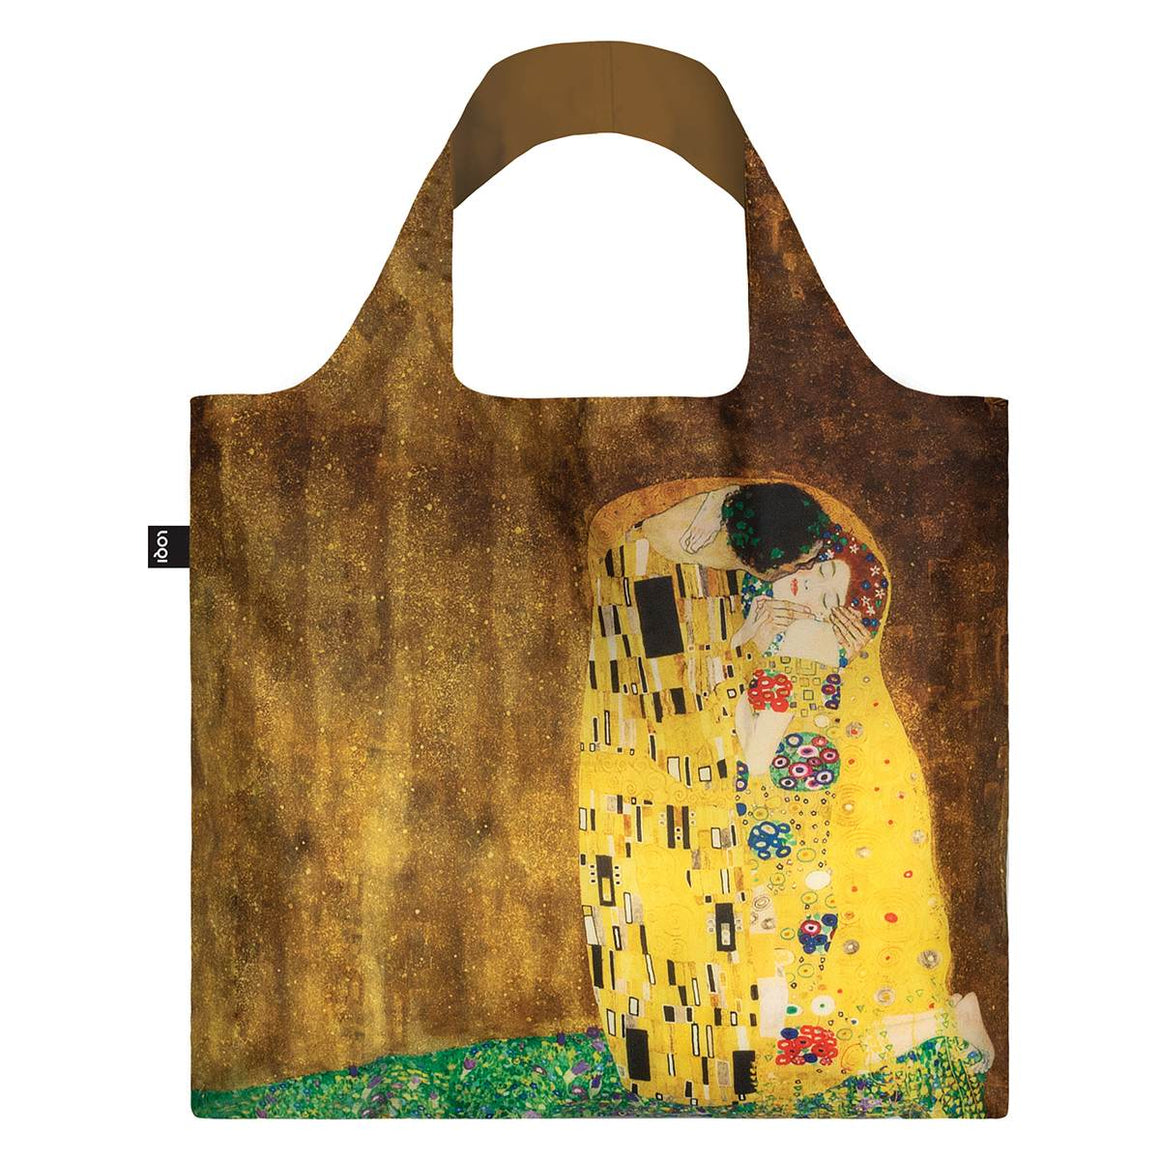 A Brown and yellow Shopping Bag featuring a Gustav Klimt Painting entitled the Kiss. A highly decorative image of a man kissing a woman.